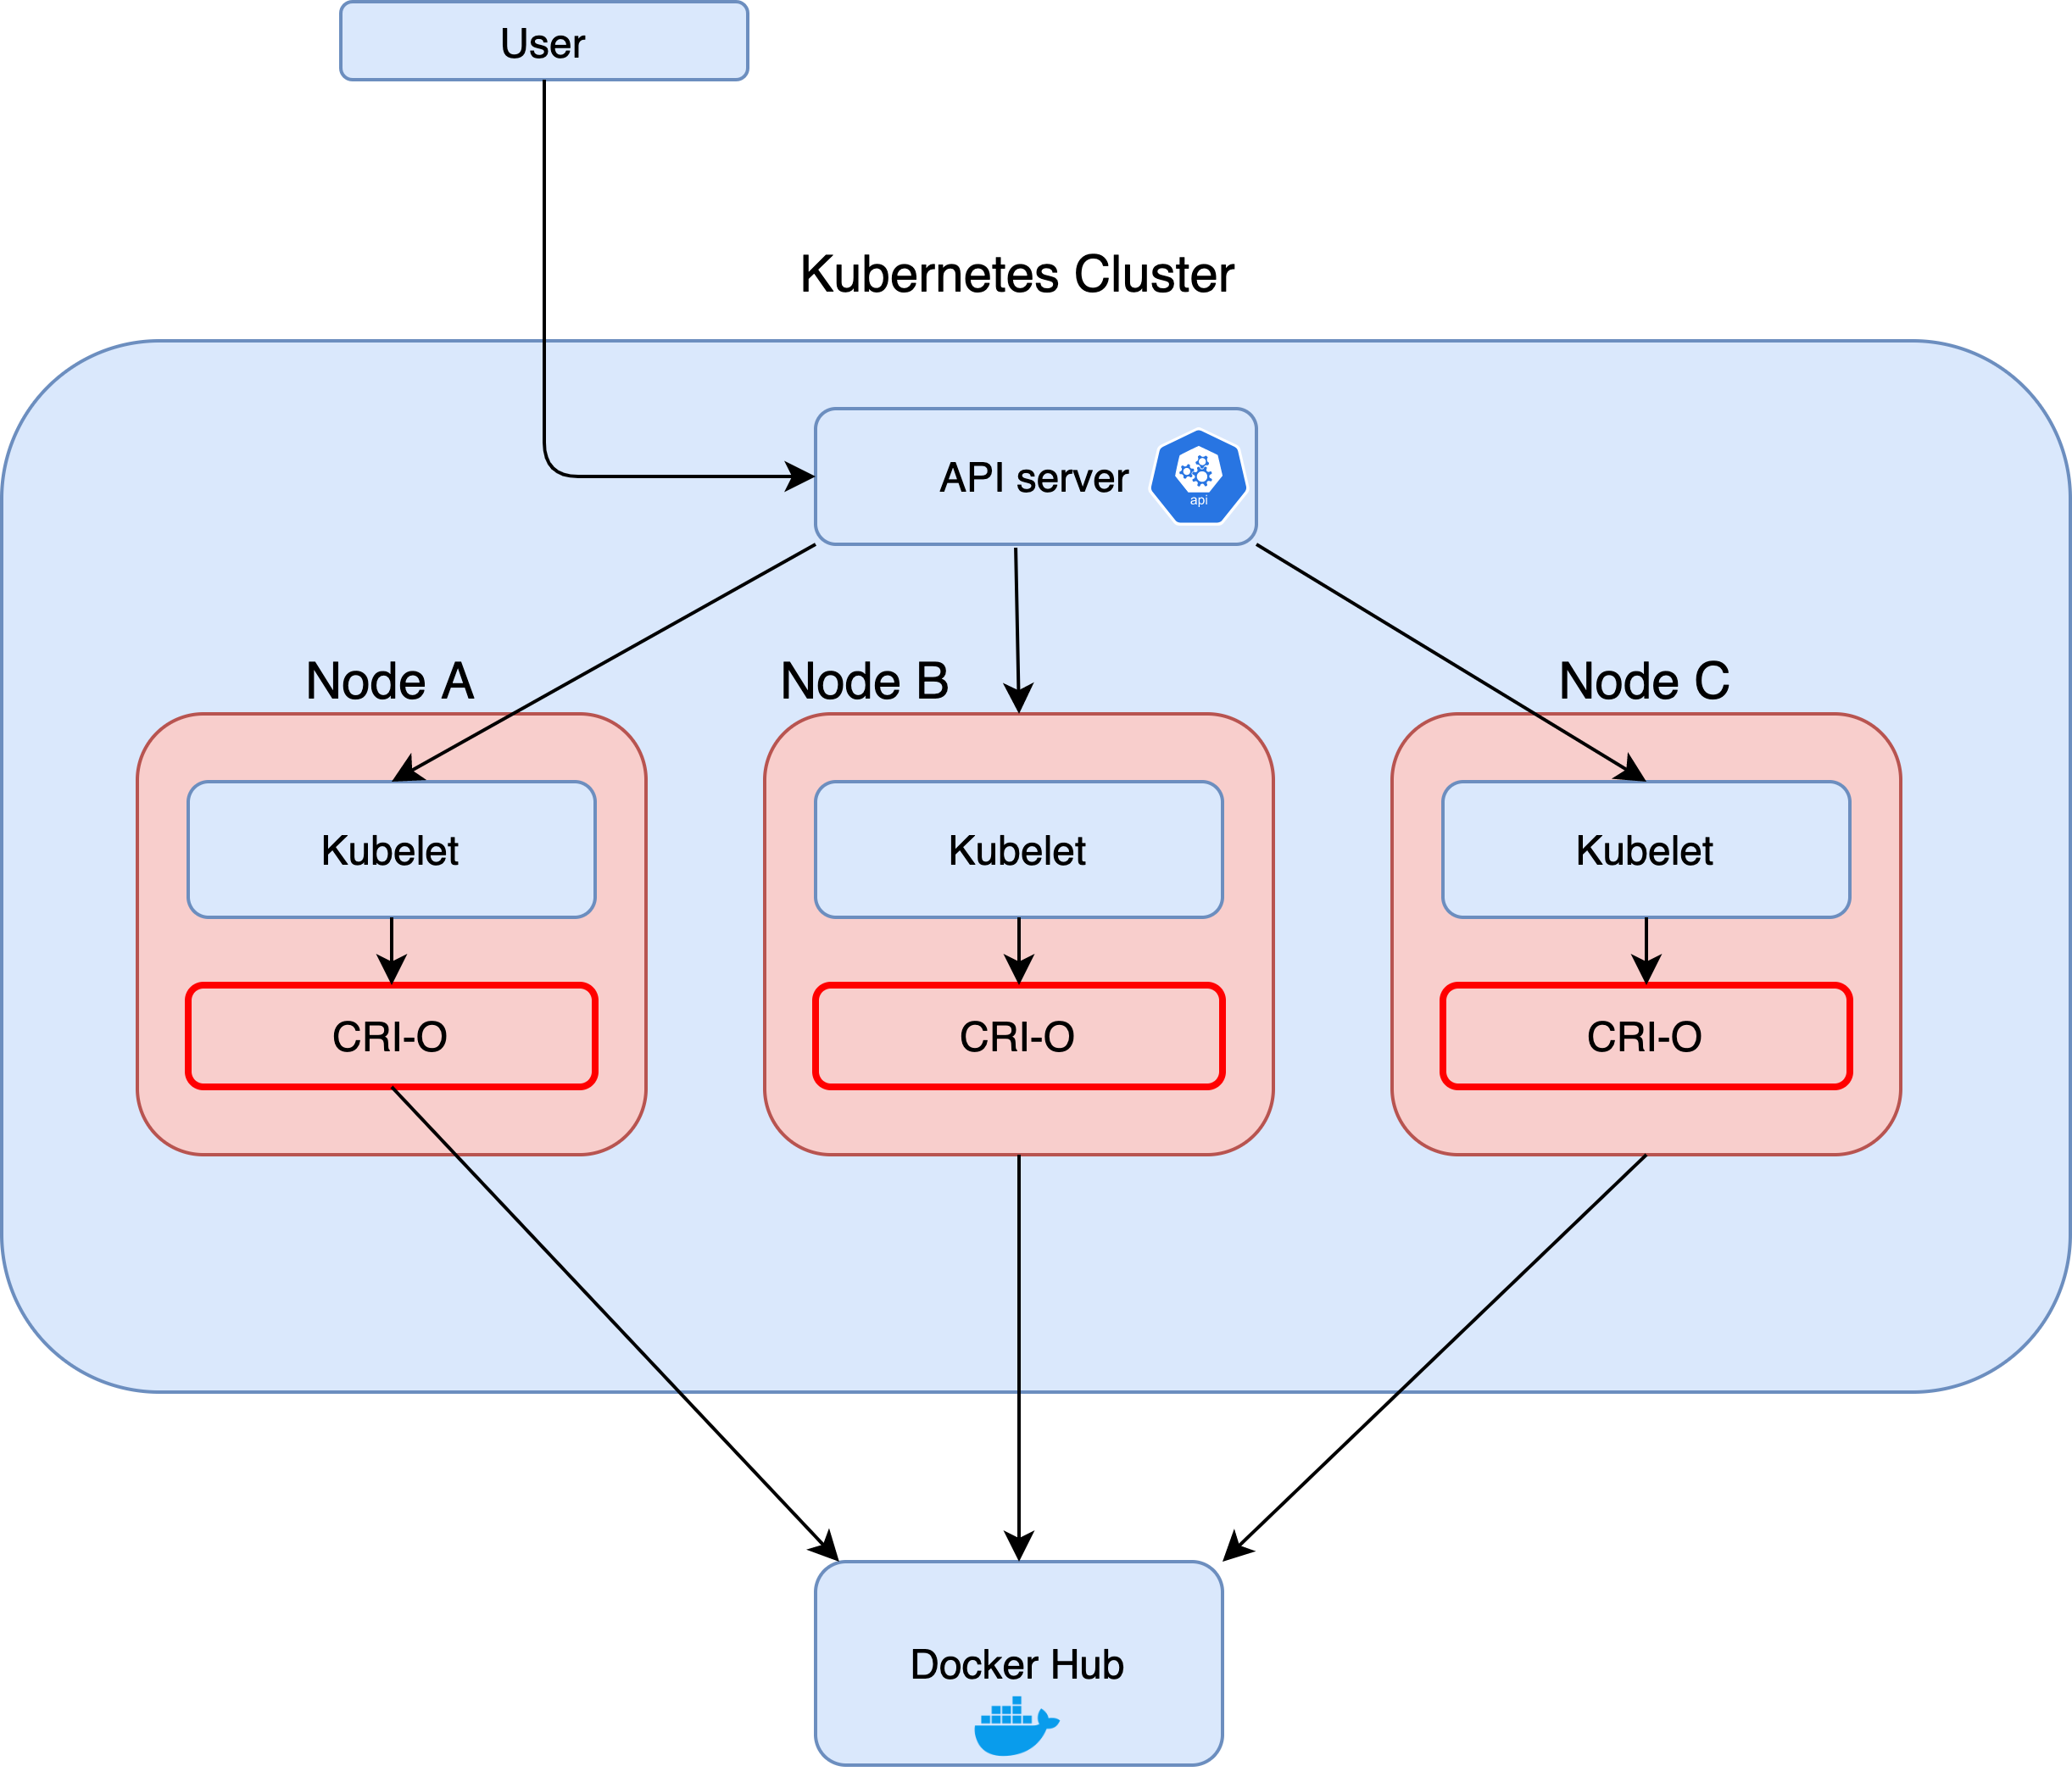 This image illustrates the flow by which a Kubernetes attack can occur. It shows where the CRI-O container engine typically sits in relation to a Kubelet and an API server.